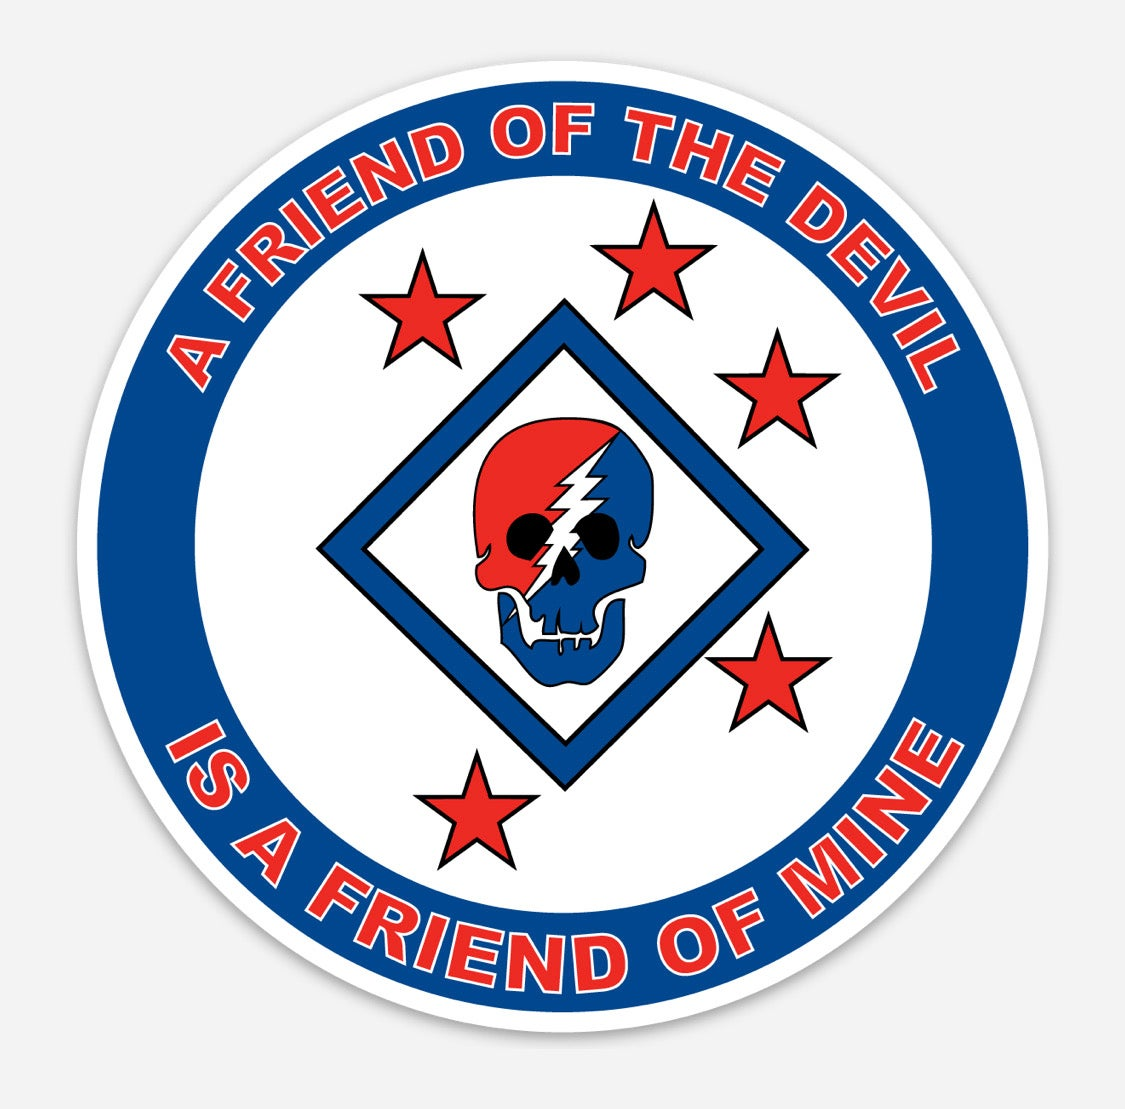 Image of A Freind of the Devil is a Friend of Mine Decal